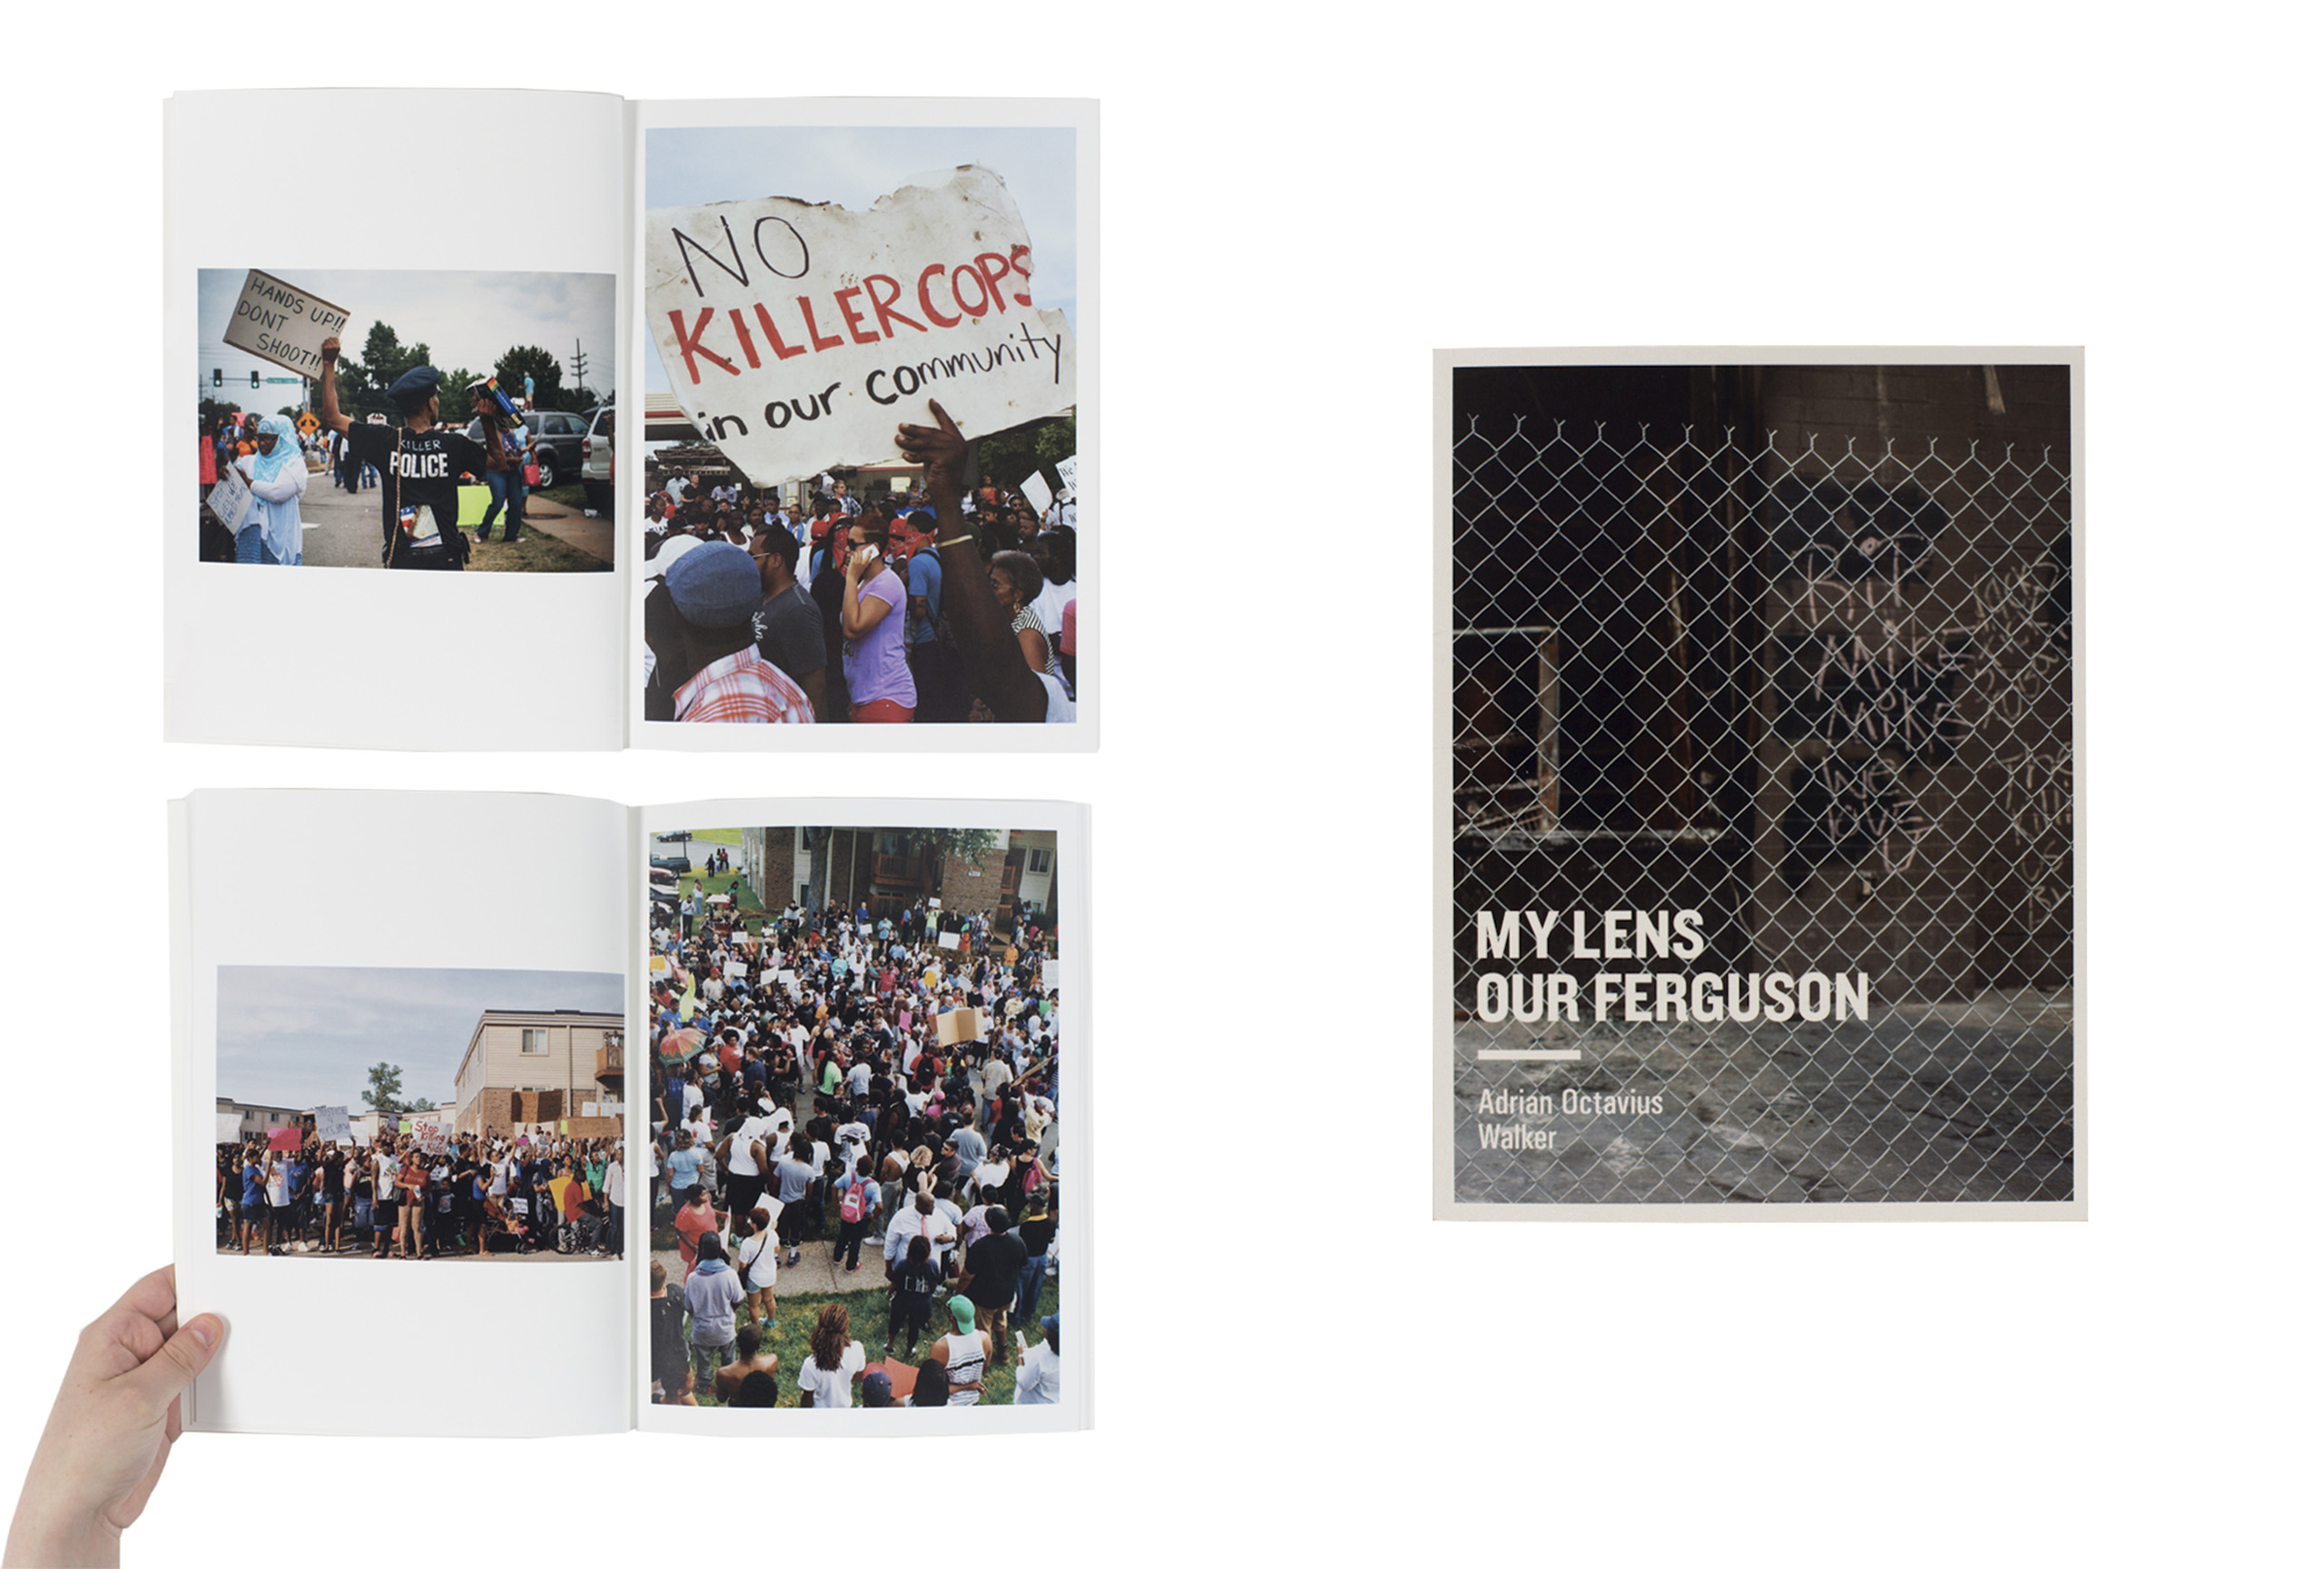 My Lens, Our Ferguson by Adrian Octavius Walker, self-published. Short-listed title for First PhotoBook.